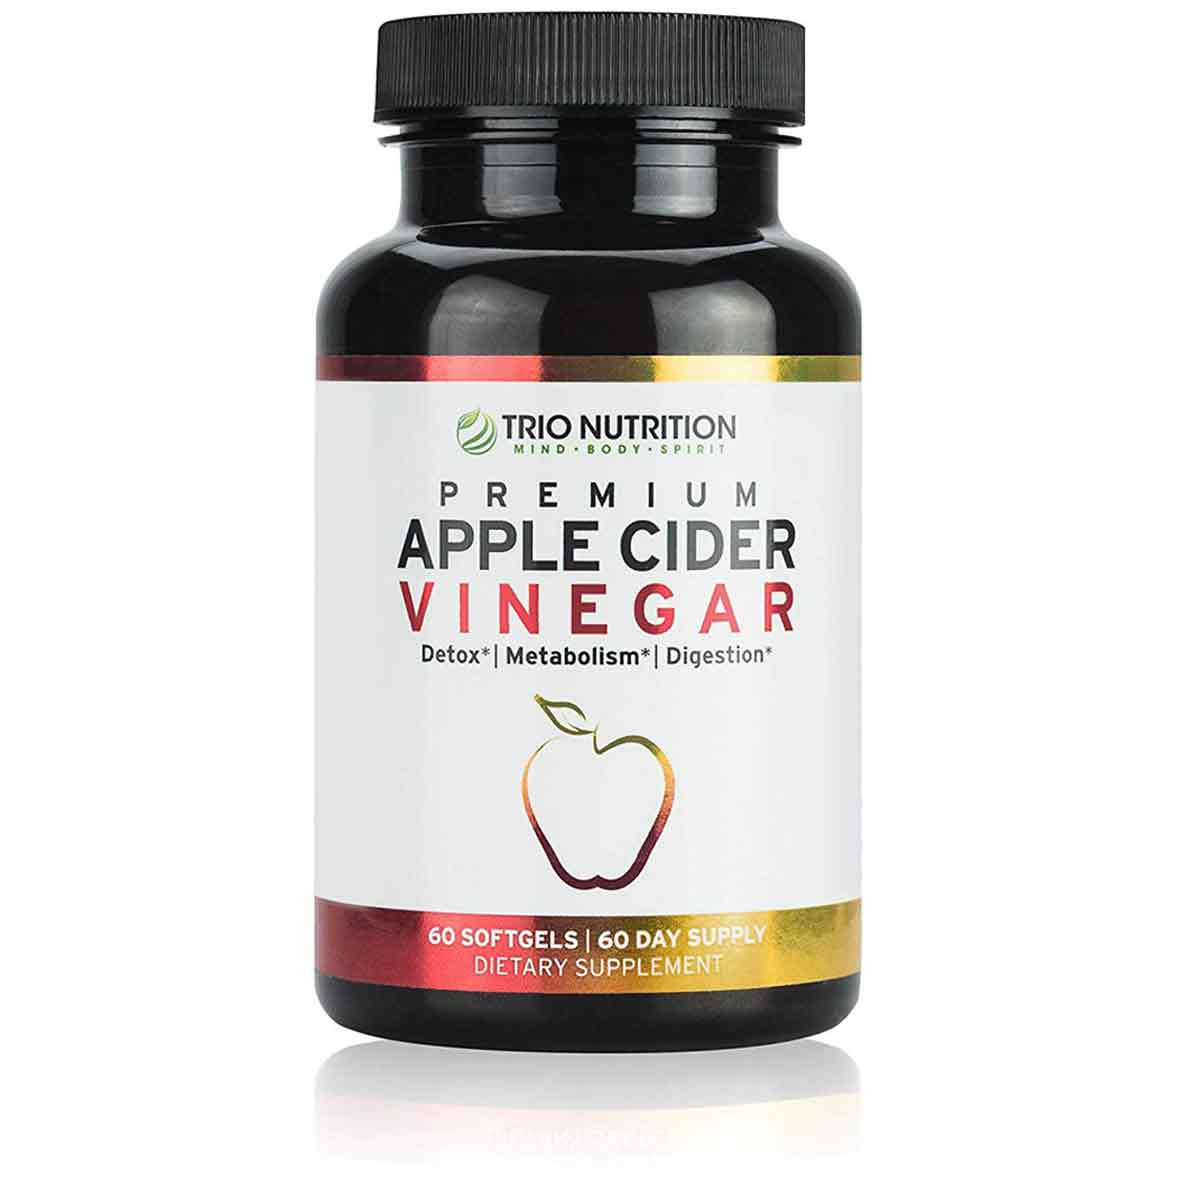 Trio Nutrition Premium Apple Cider Vinegar